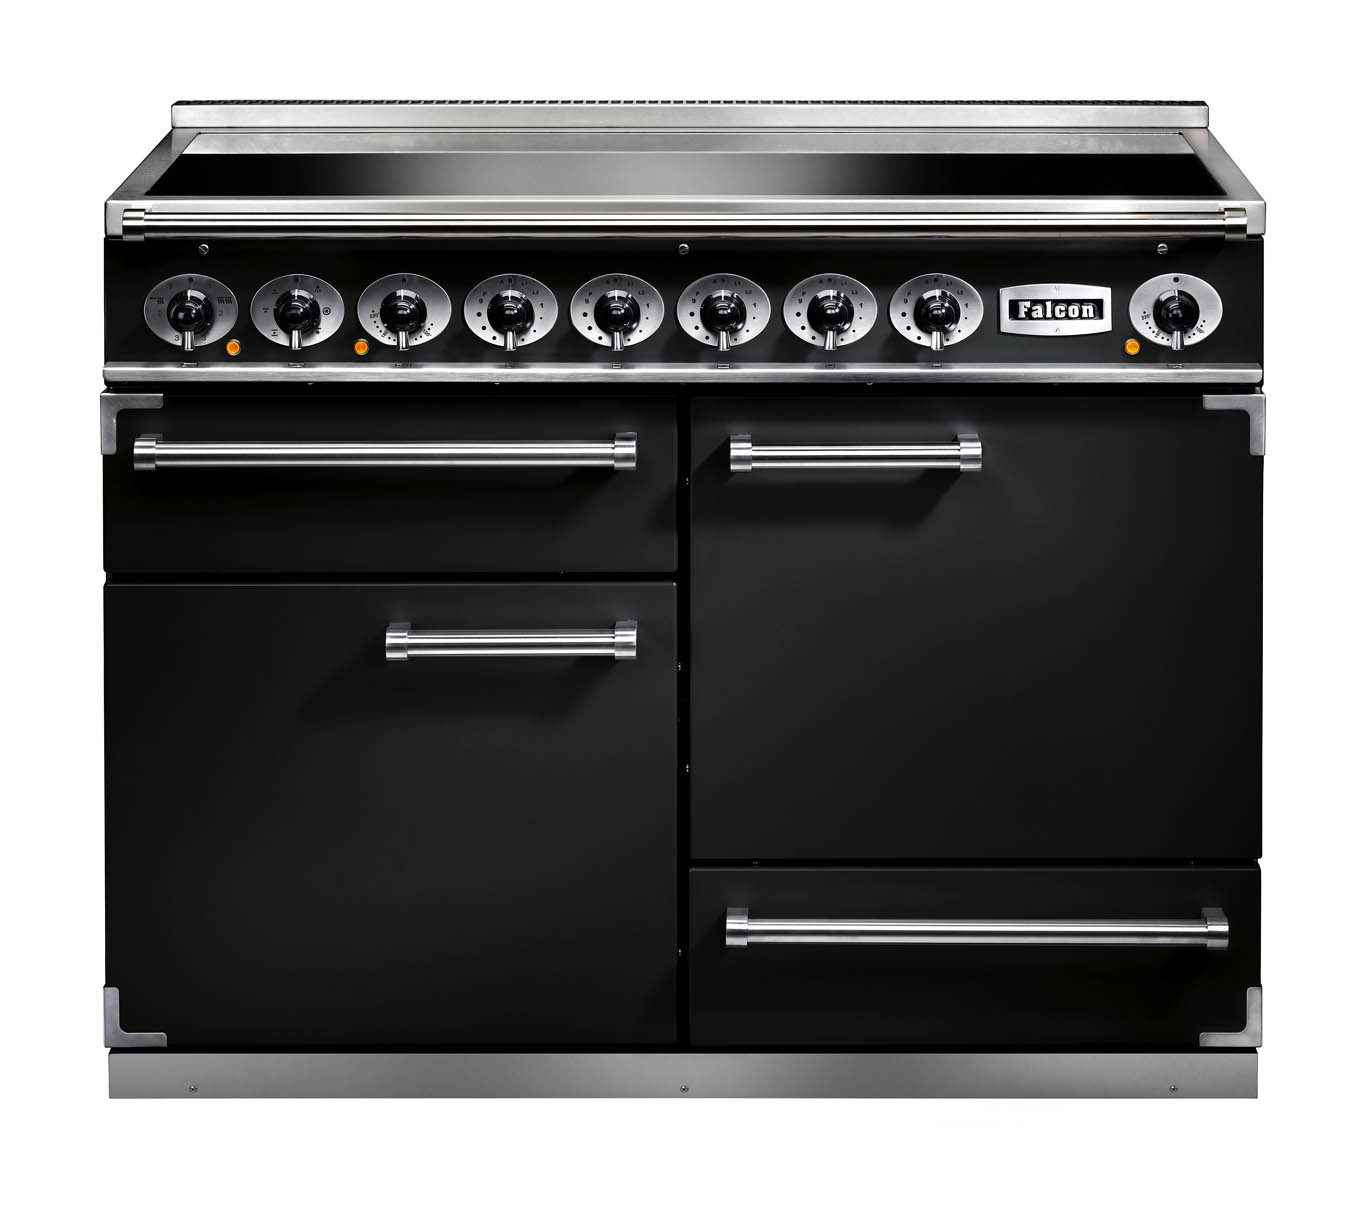 Falcon 1092 Deluxe Induction Black/Chrome Range Cooker